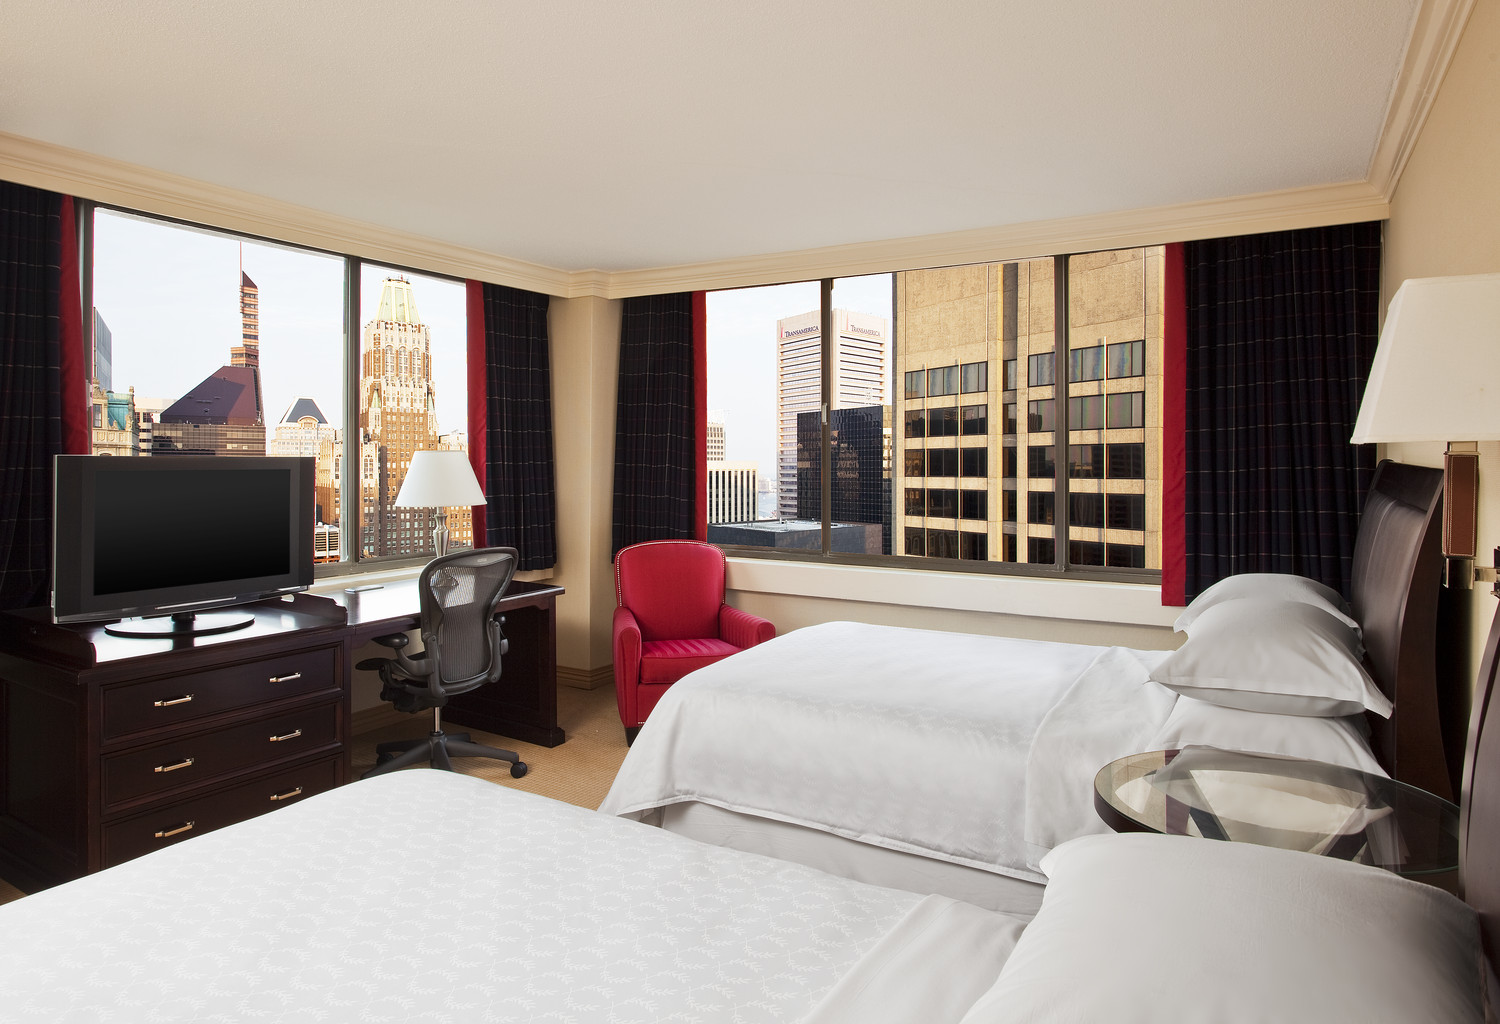 A guest room at the Radisson Baltimore Downtown - Inner Harbor.